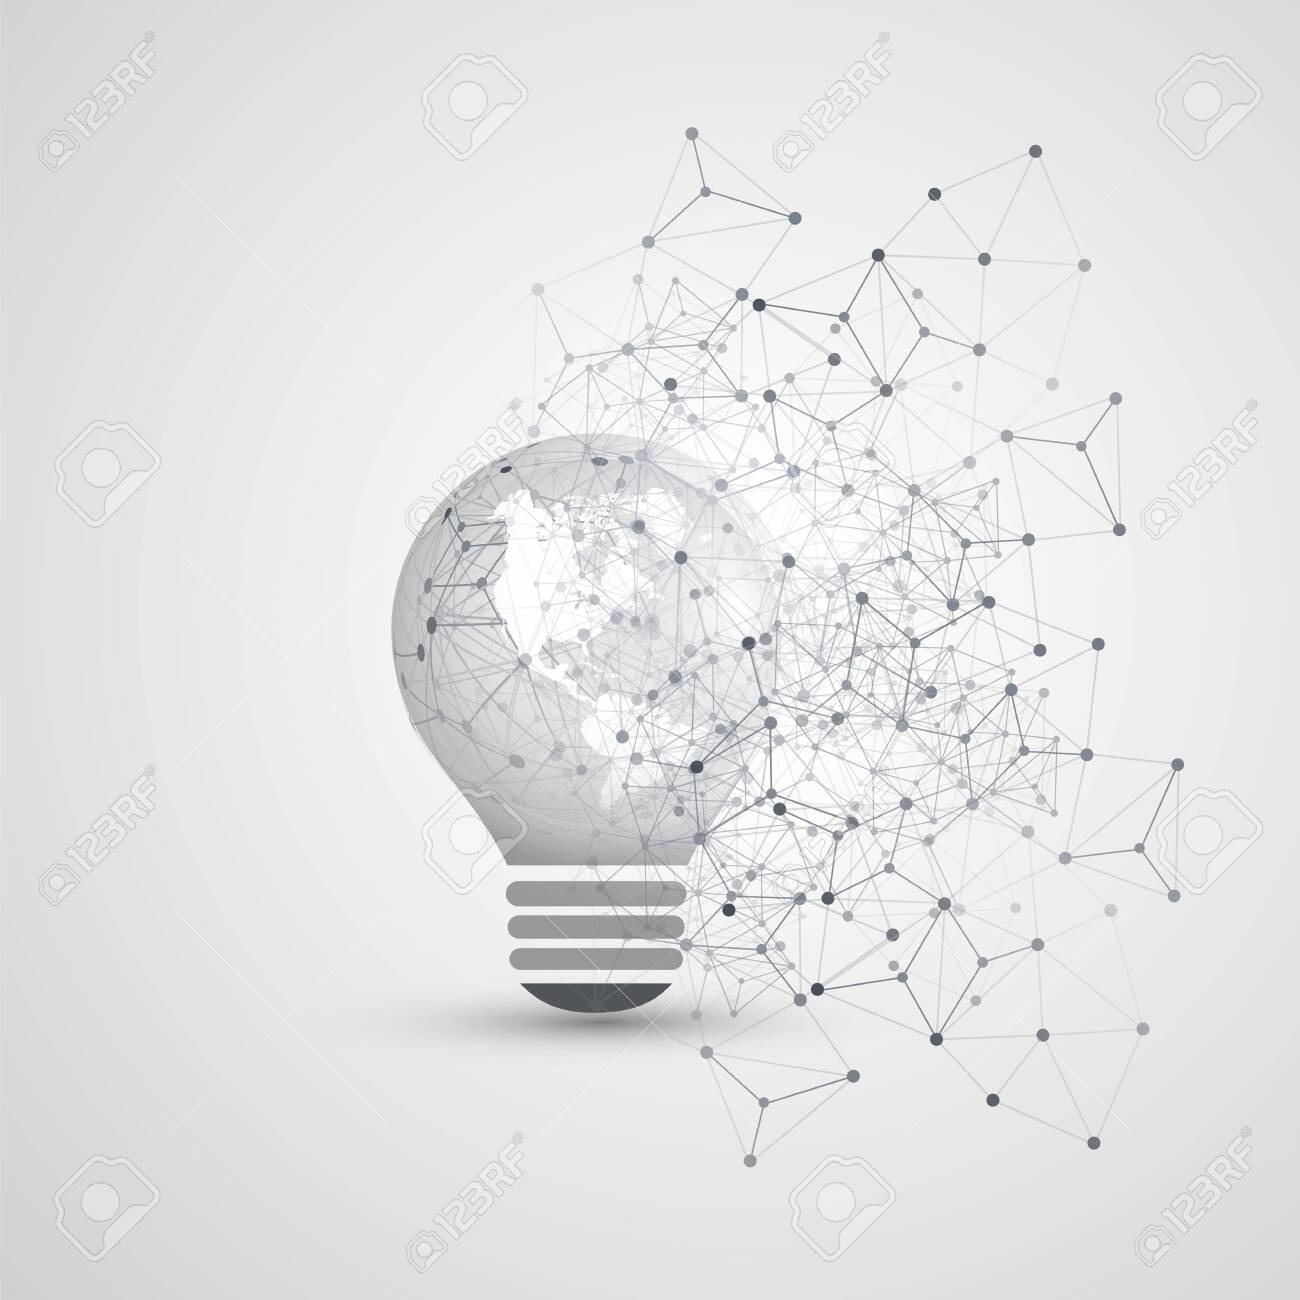 Abstract Electricity, Cloud Computing and Global Digital Network Connections Concept Design with Earth Globe Inside of a Light Bulb, Transparent Geometric Mesh - 121011210